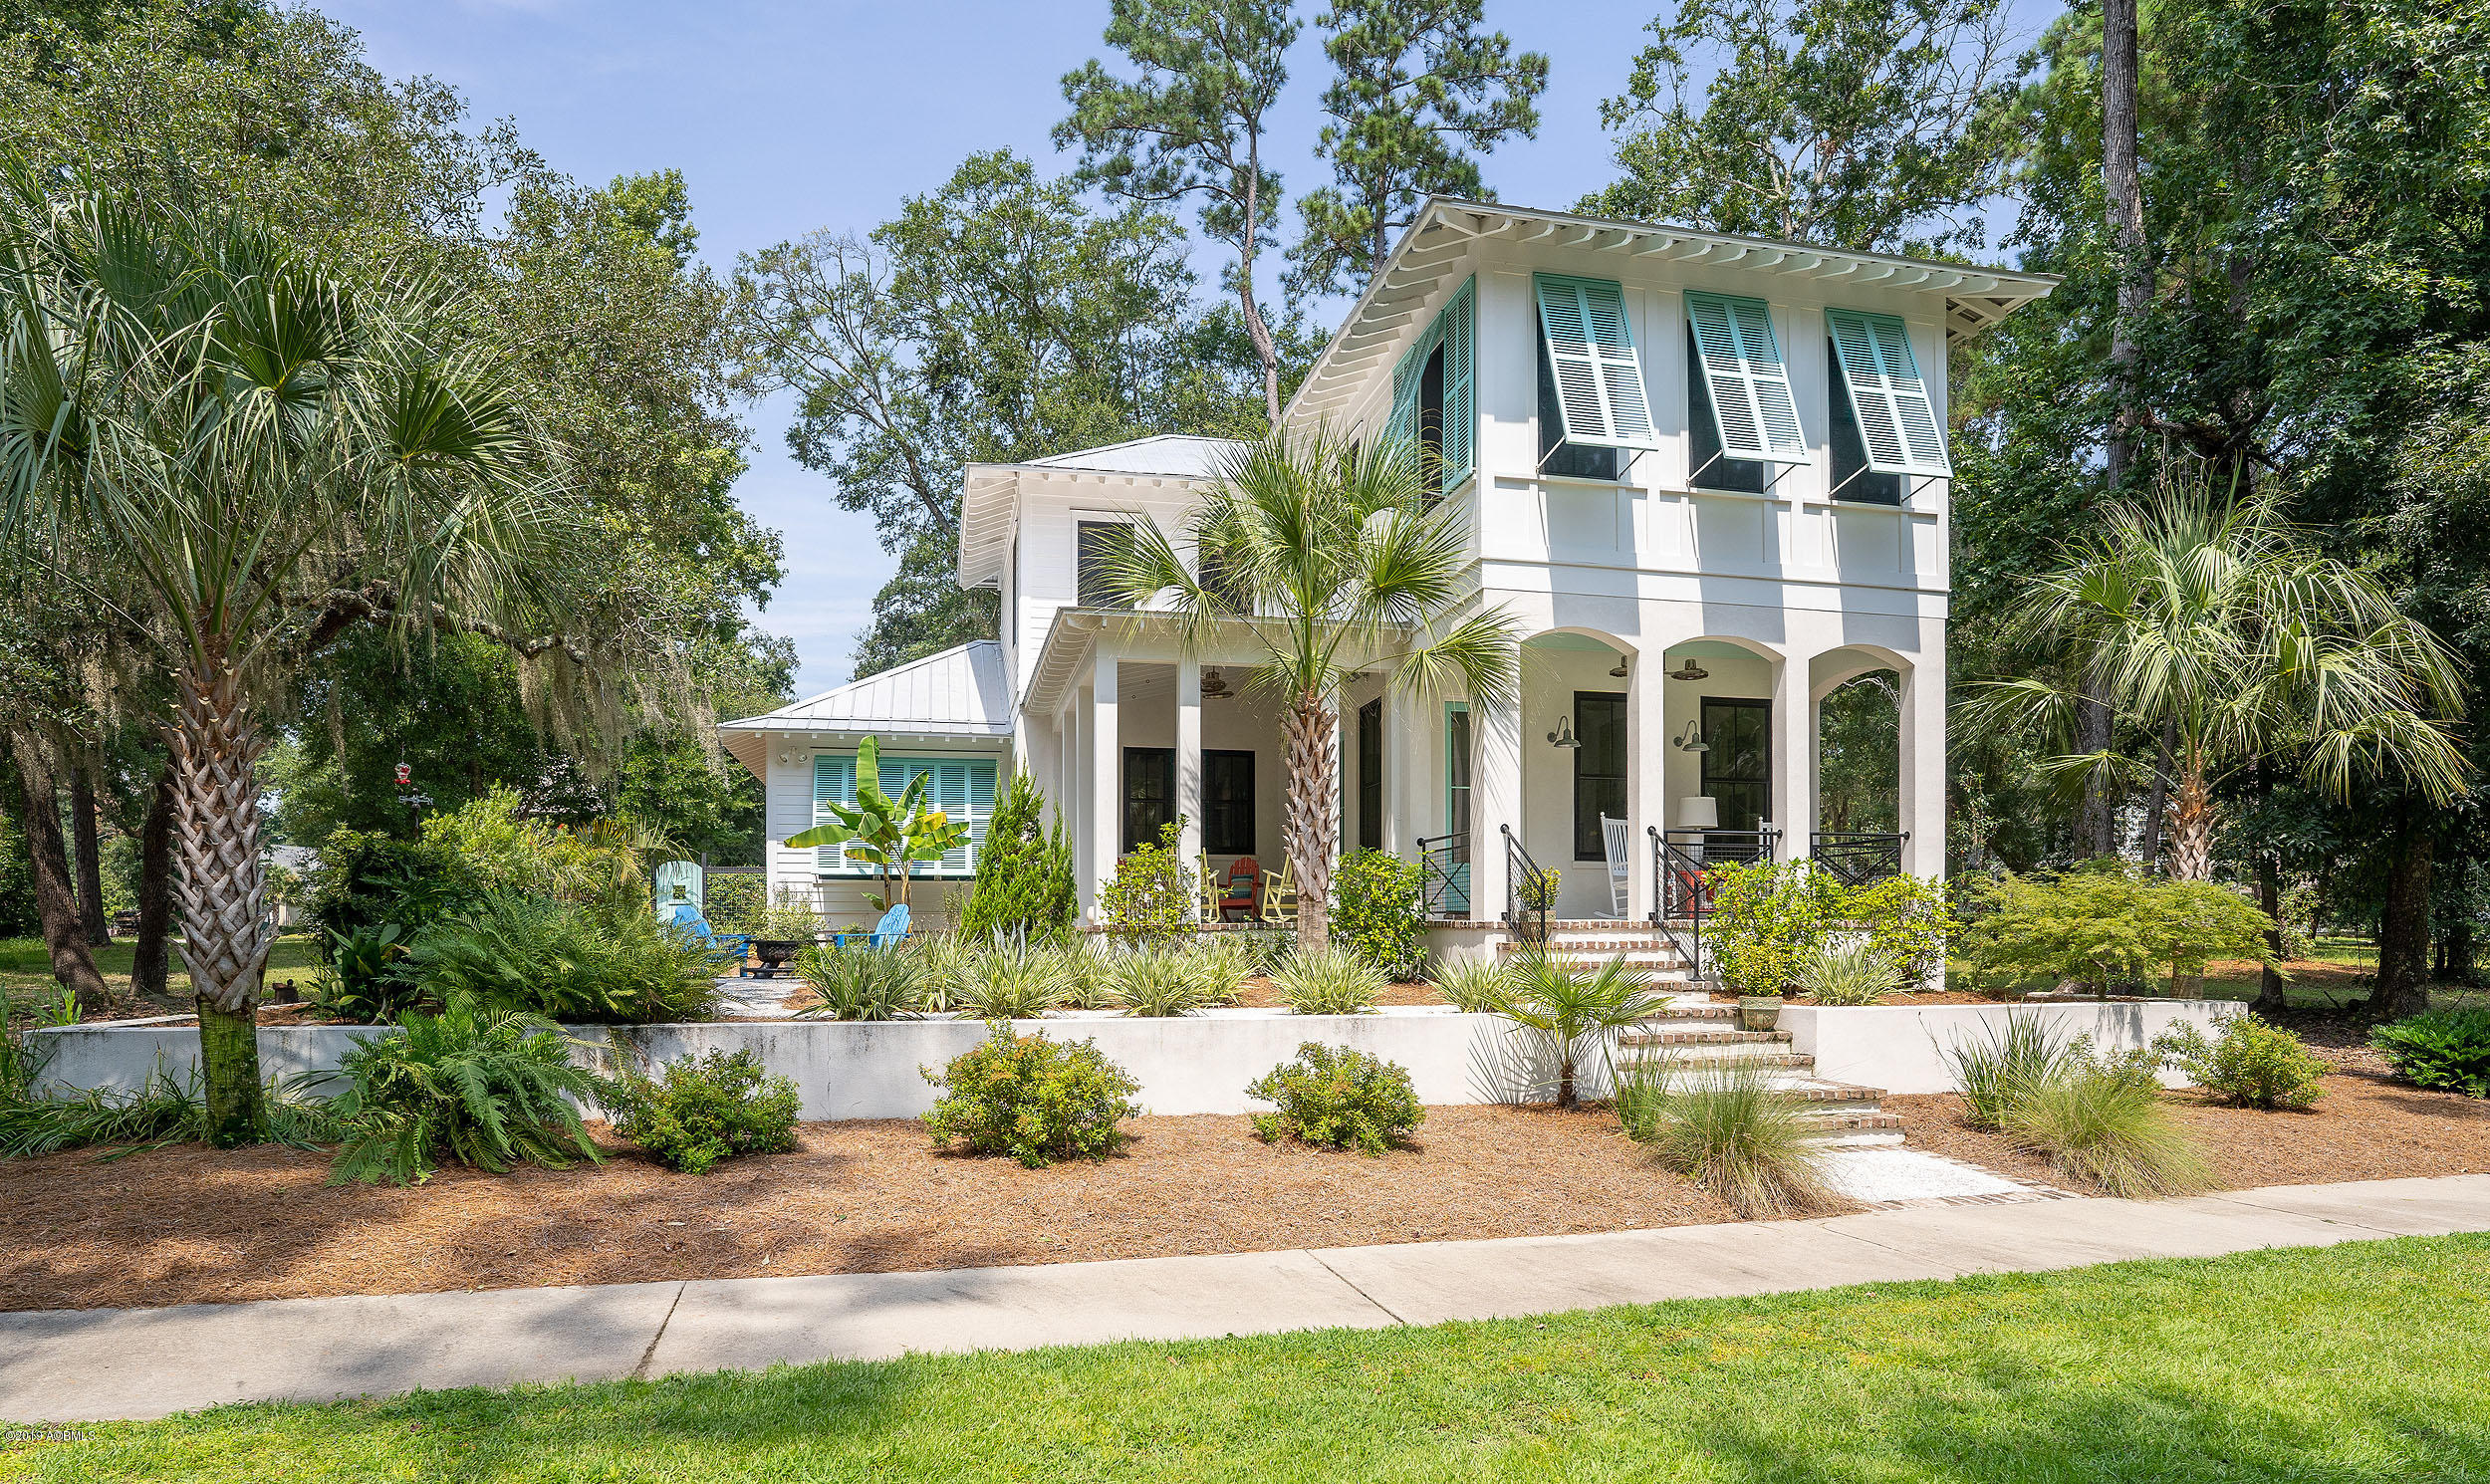 Photo of 31 S Eastover, Beaufort, SC 29906